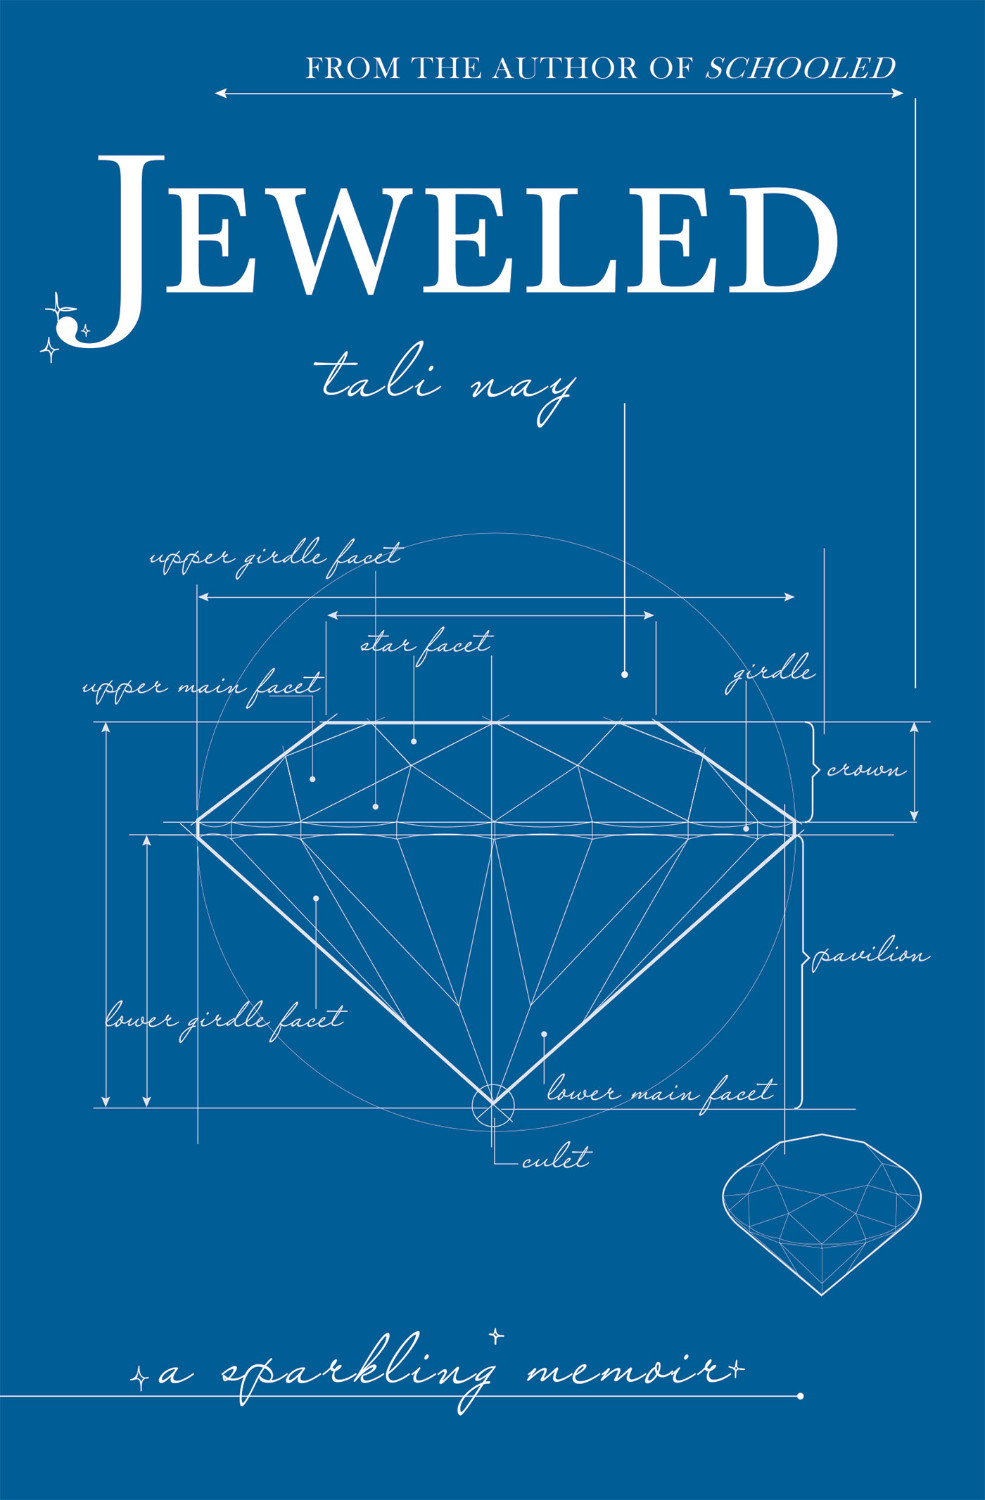 TN_Jeweled_FrontCover_Final_41614_1400px_wide_542-100.jpg